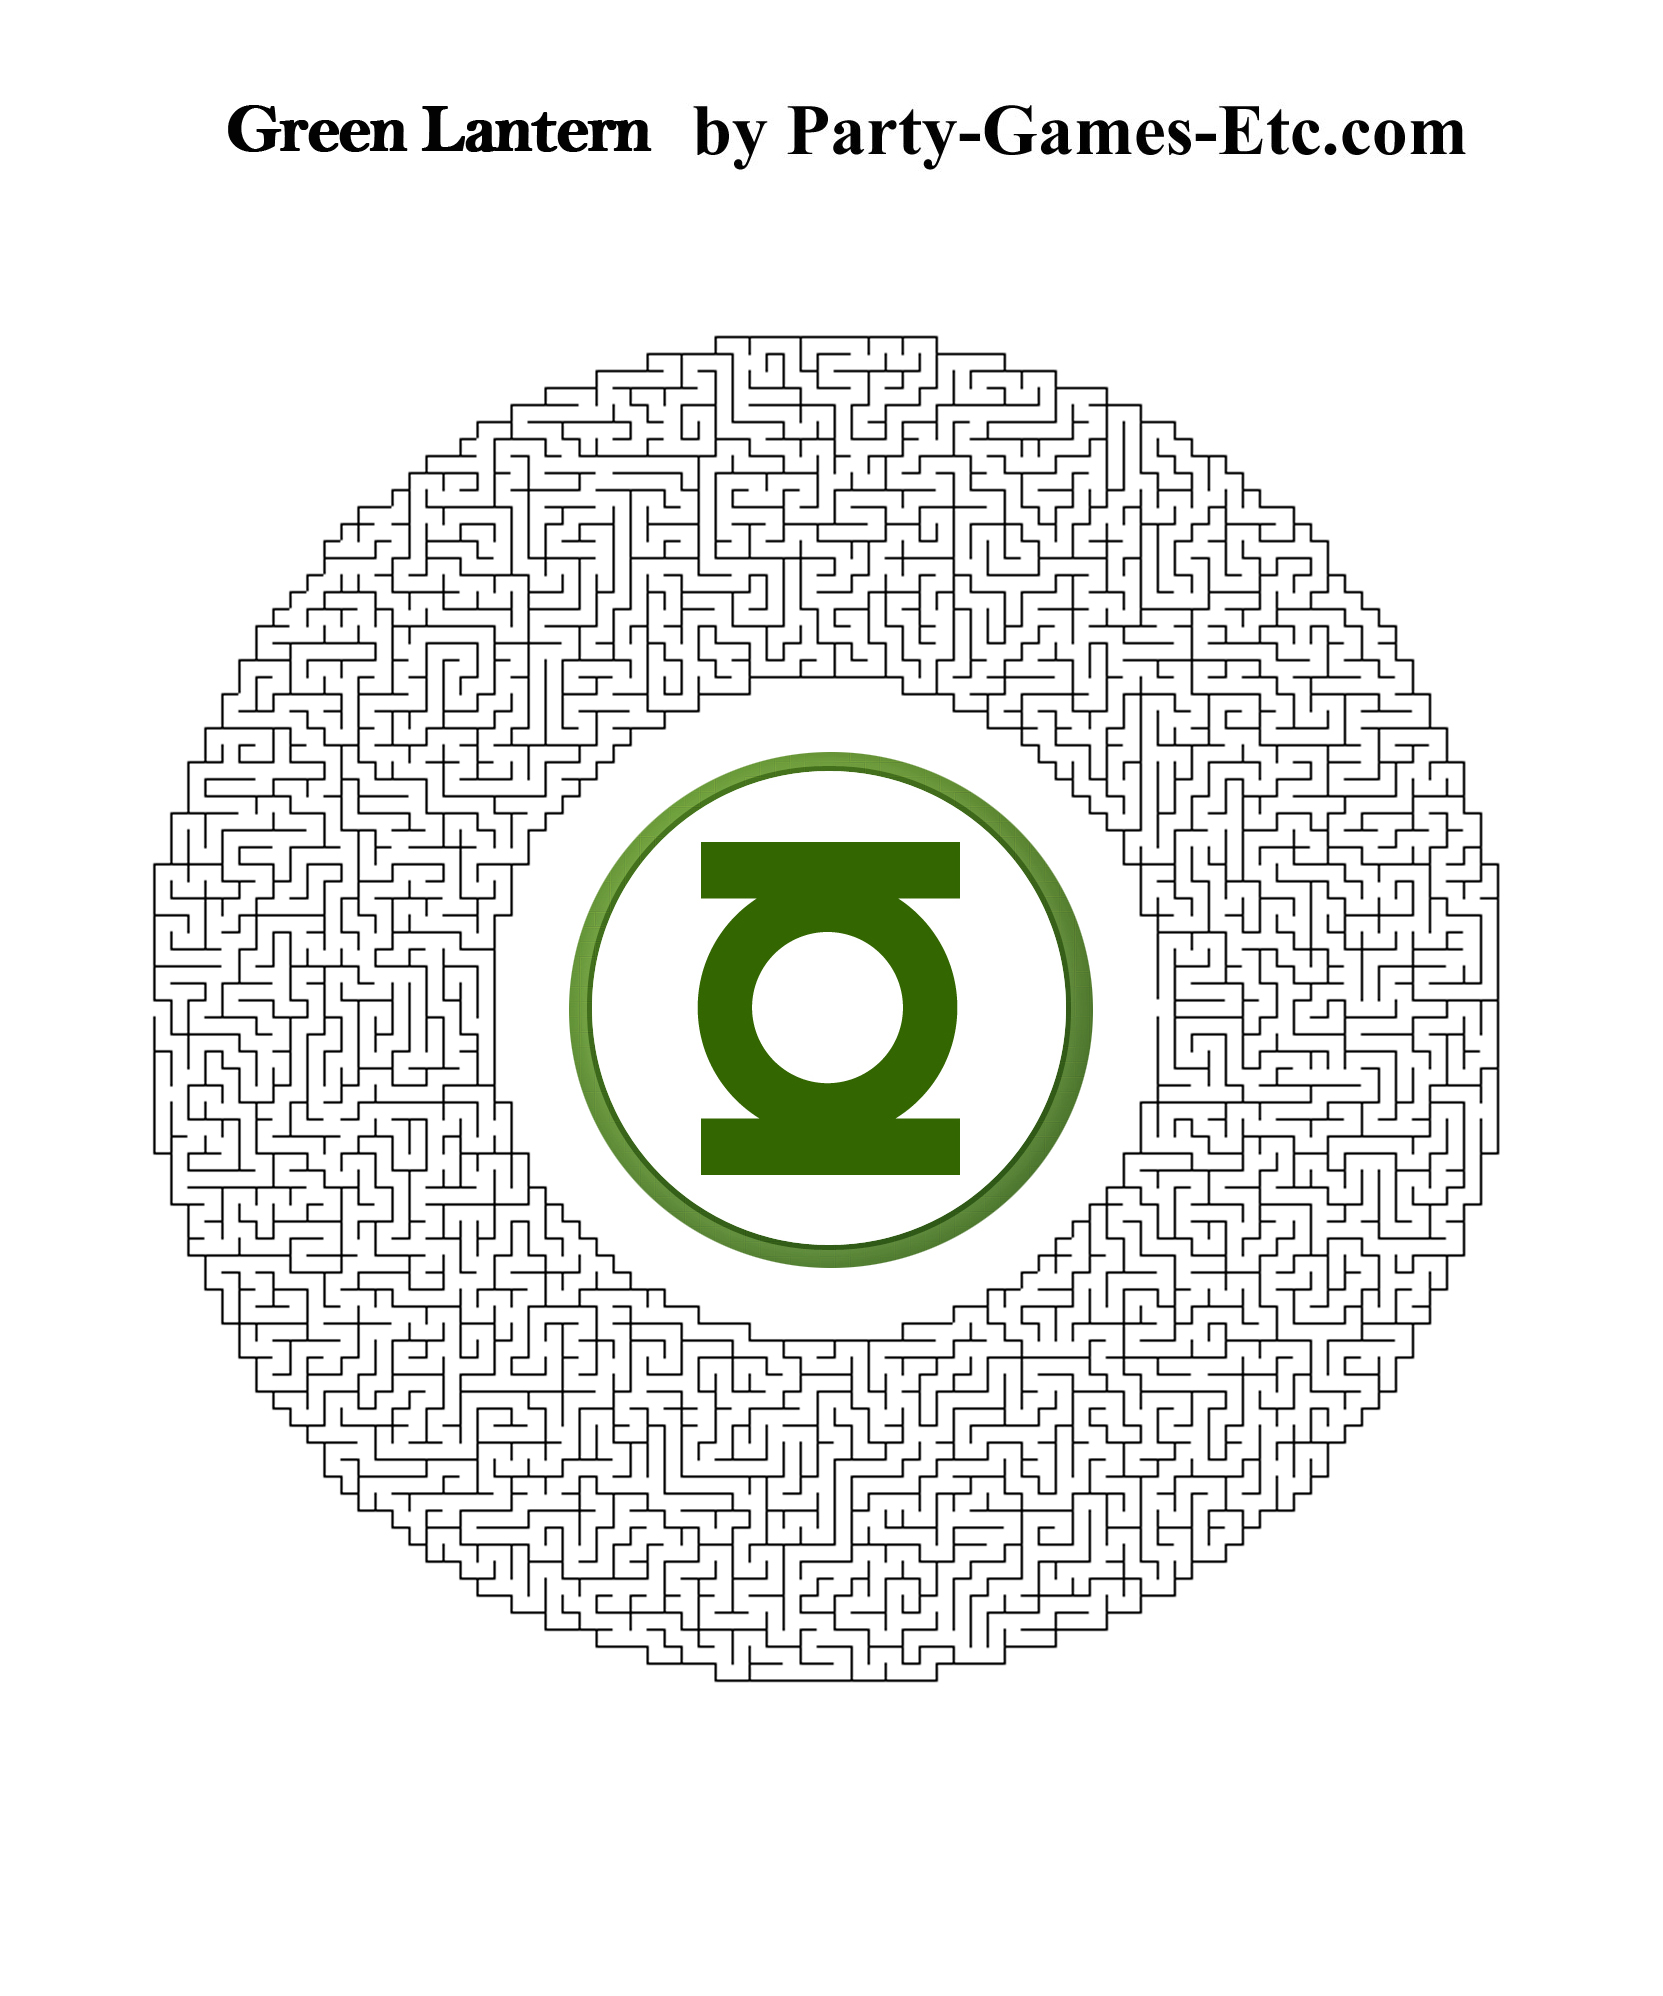 Green Lantern Party Games, Free Printable Games and